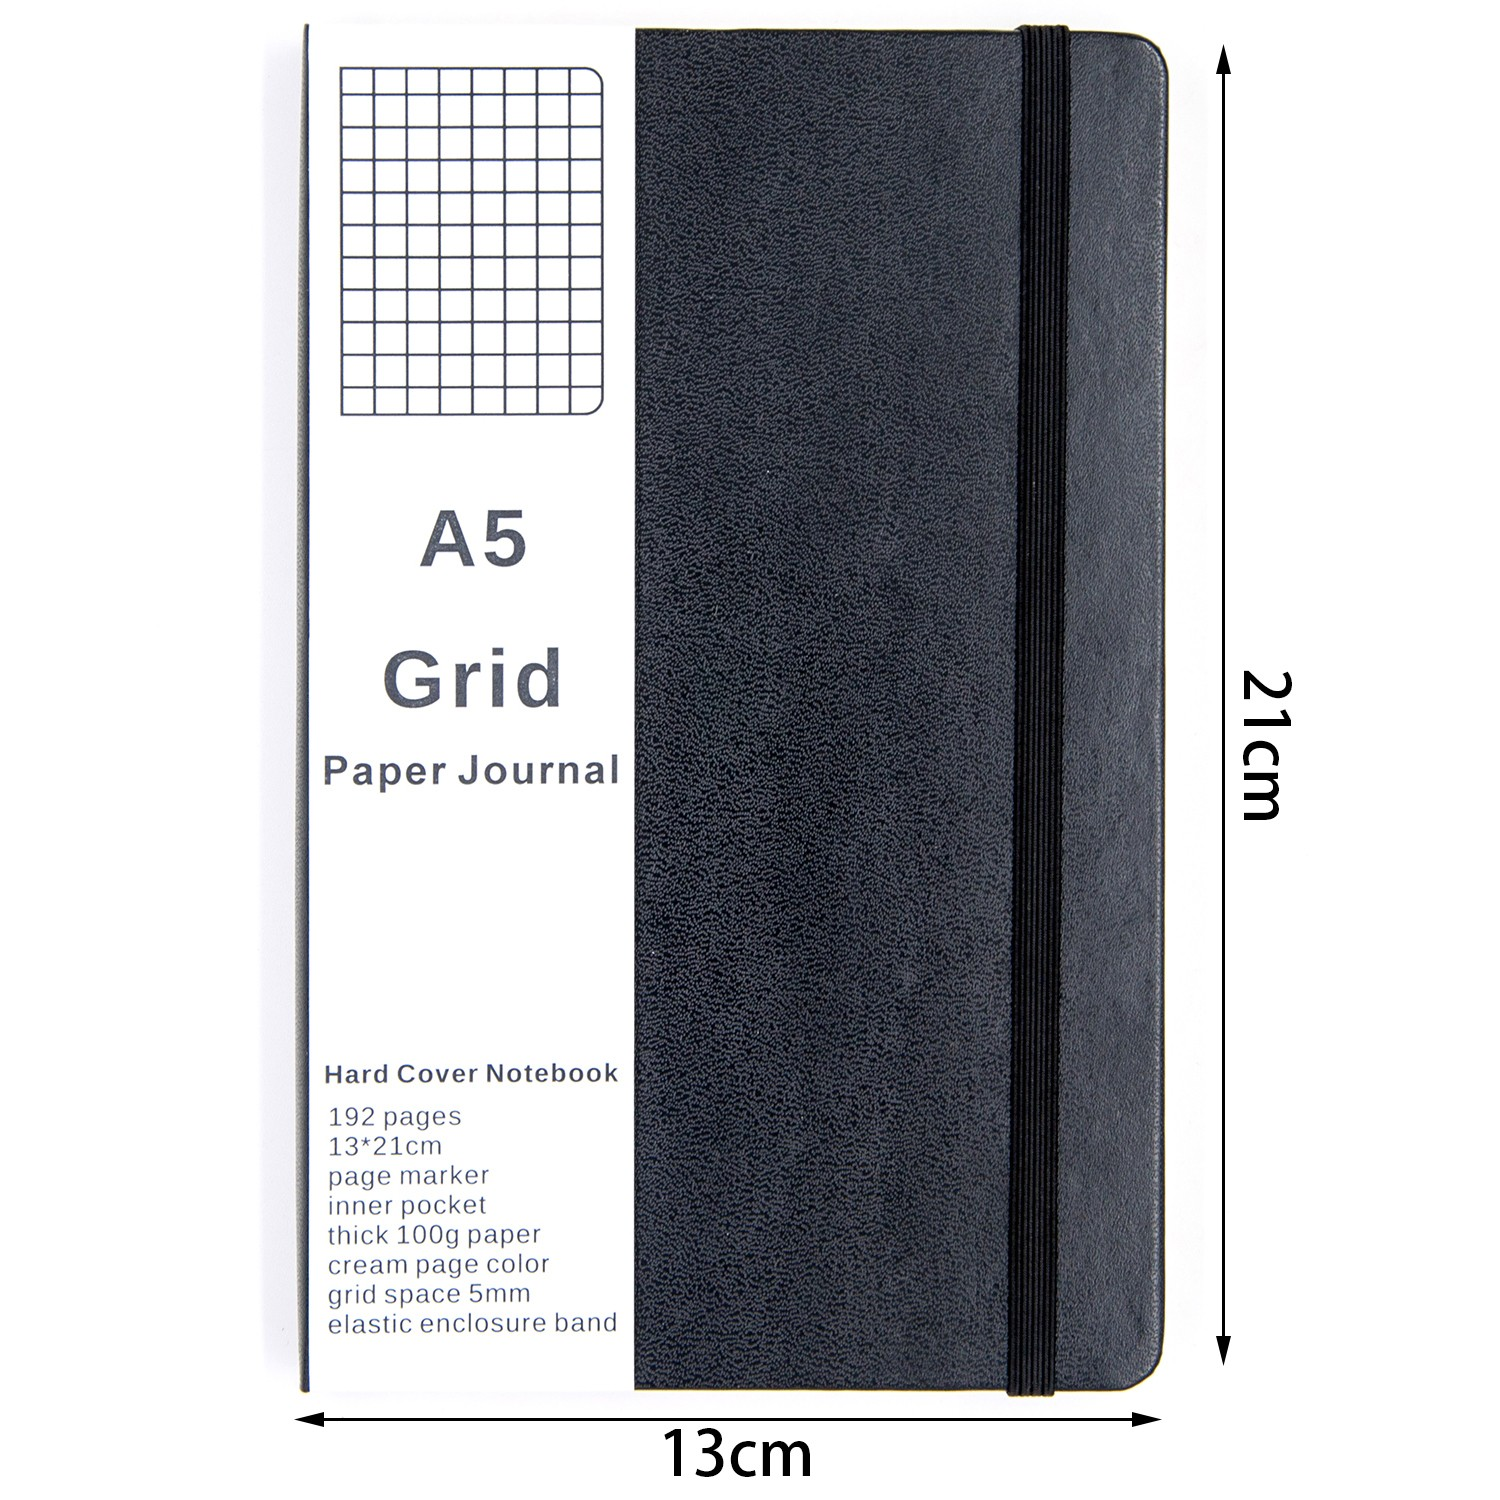 grid paper journal notebook medium a5 hardcover 192 pages bullet